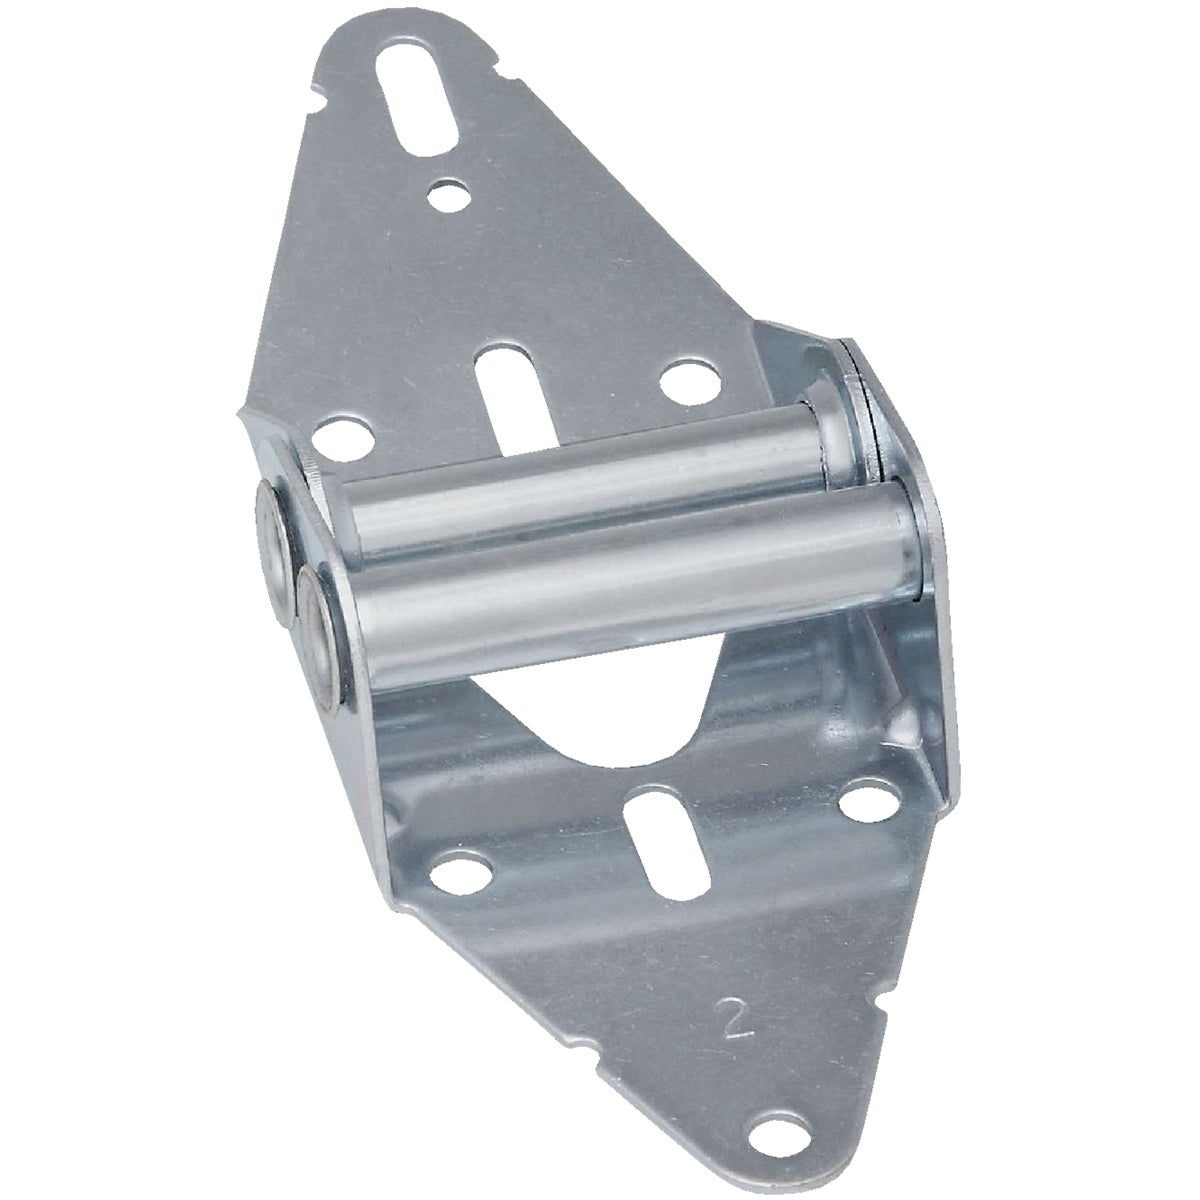 #2 HINGE W/BOLTS&NUTS - N280172 by National Mfg Co